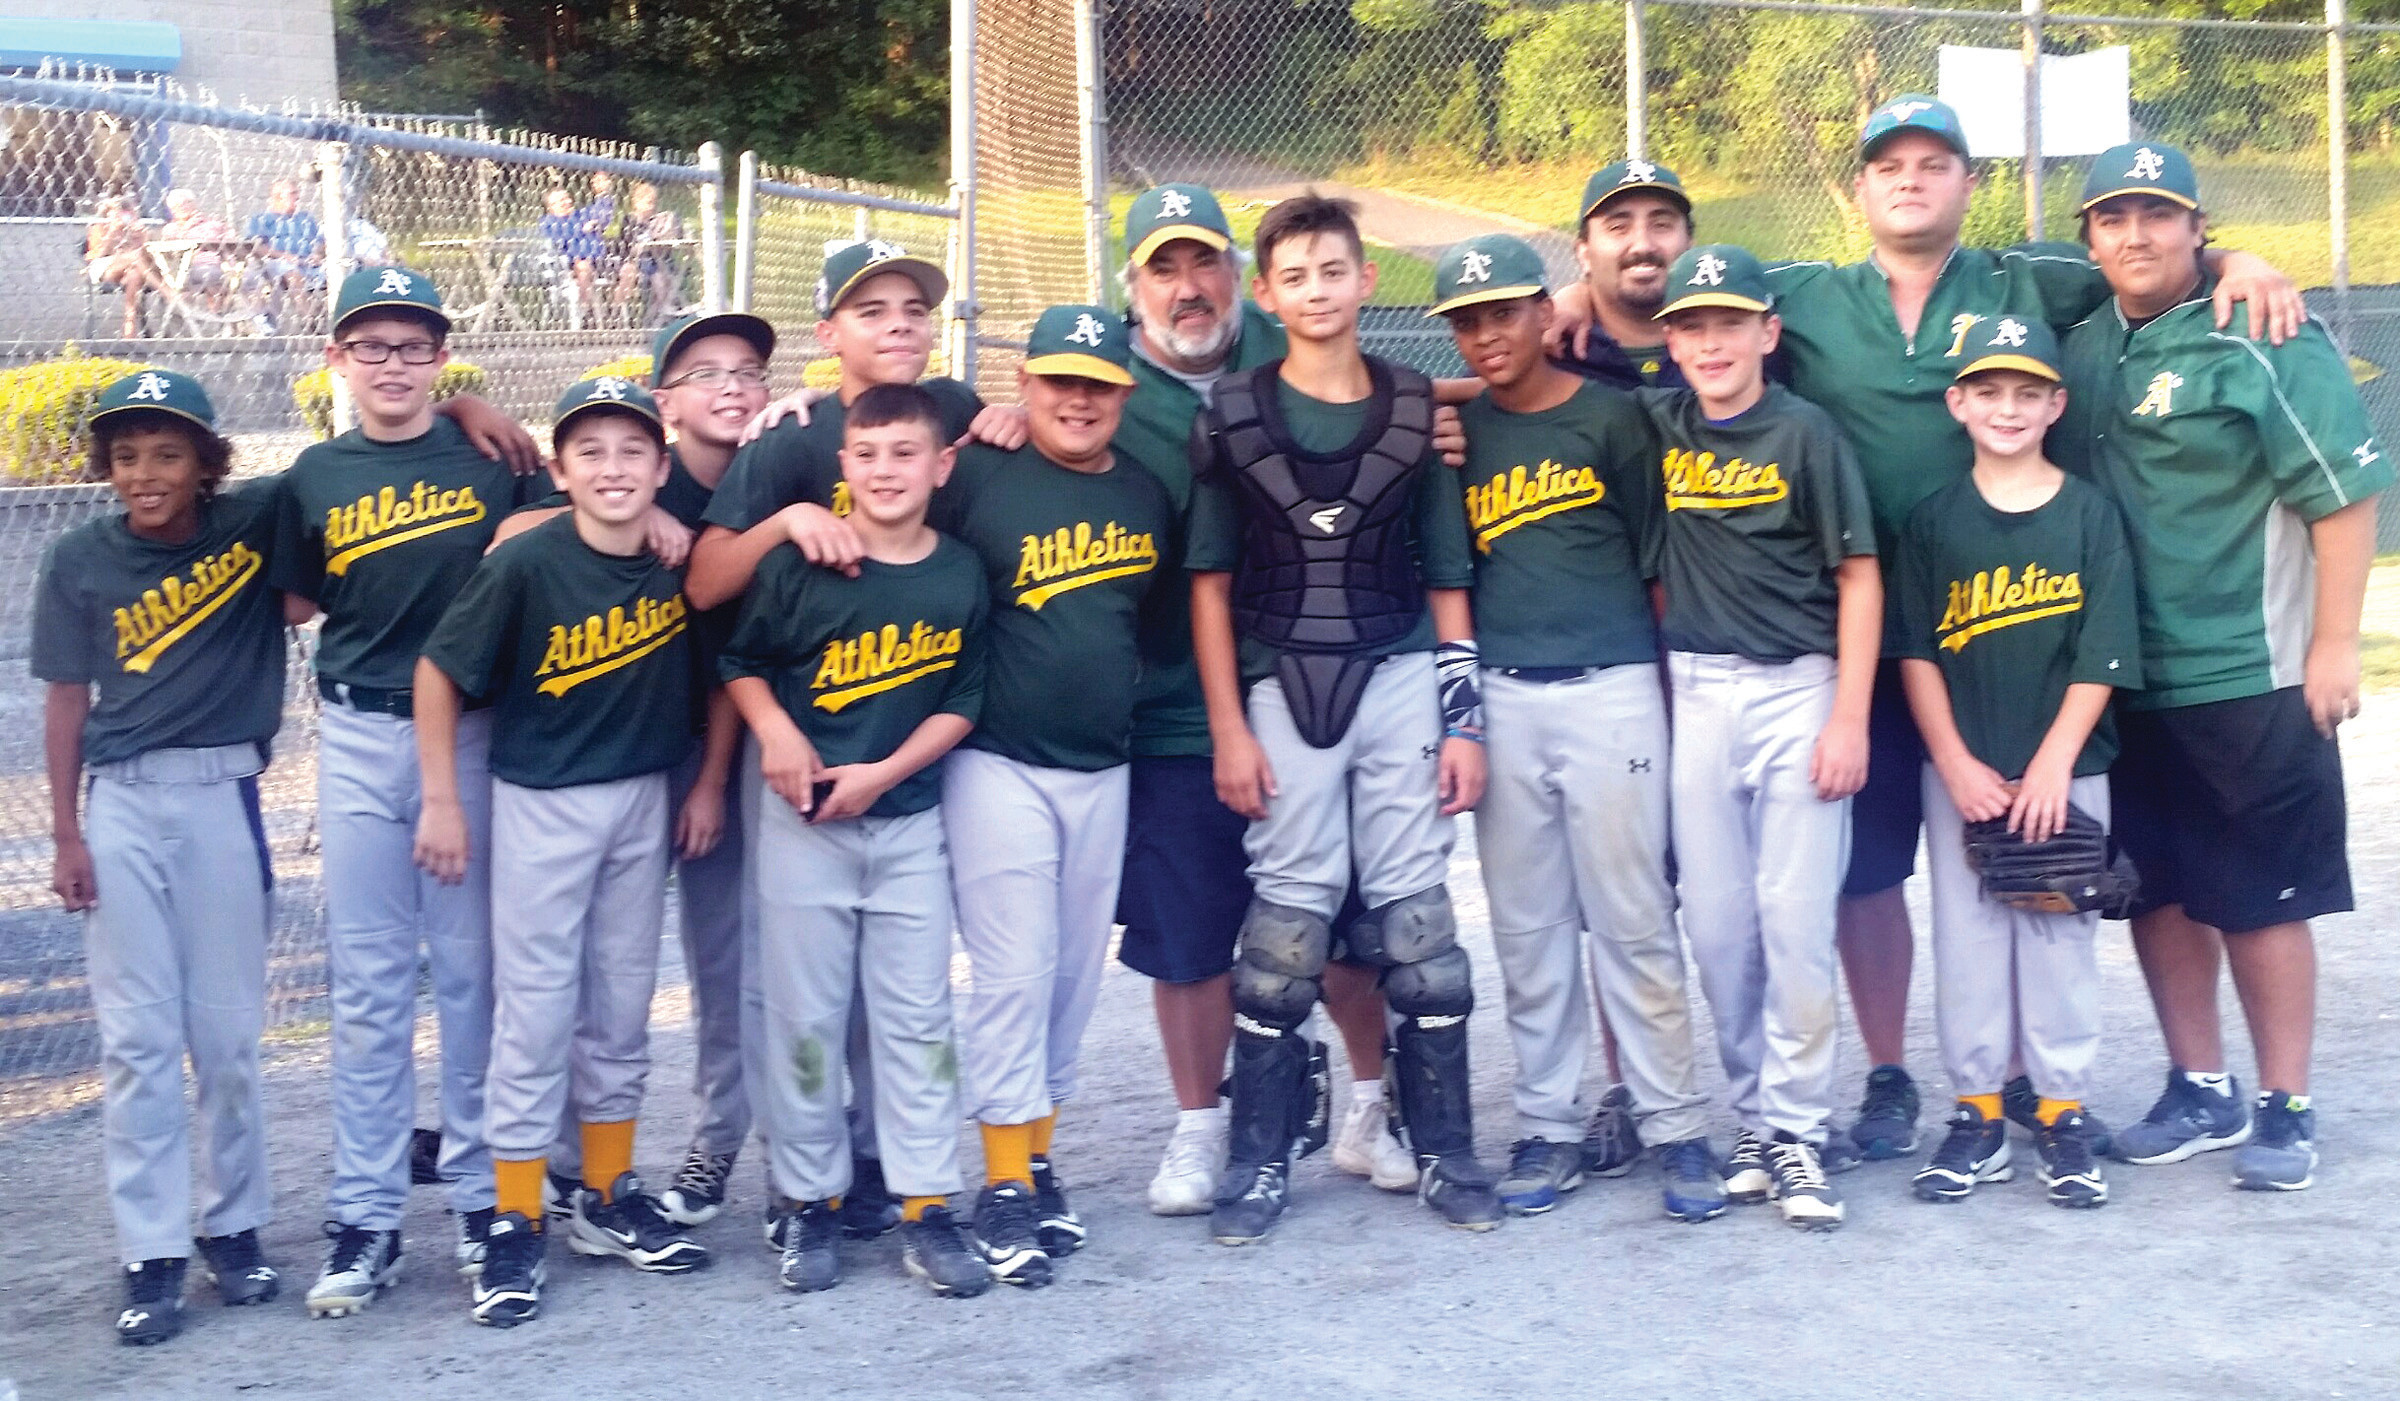 SUPER SQUAD: Meet the Johnston Little League's Countyview Landscaping-sponsored Athletics who recently staked claim to the Town Championship for a second straight season. The team includes, from left: Nomar Campbell, Stephen D'Arienzo, Nick D'Aquila, Christian Mattson, Joey Vento, Jackson Villani, Nicholas Villani, Hudson Carvalho, Jonah Pecchia, Christopher Geraghty and Jason Schino. Coaches standing in back are: Eddie Pannone Jr., Eddie Pannone III, Manager Mike Perez and Coach Anthony Pannone.